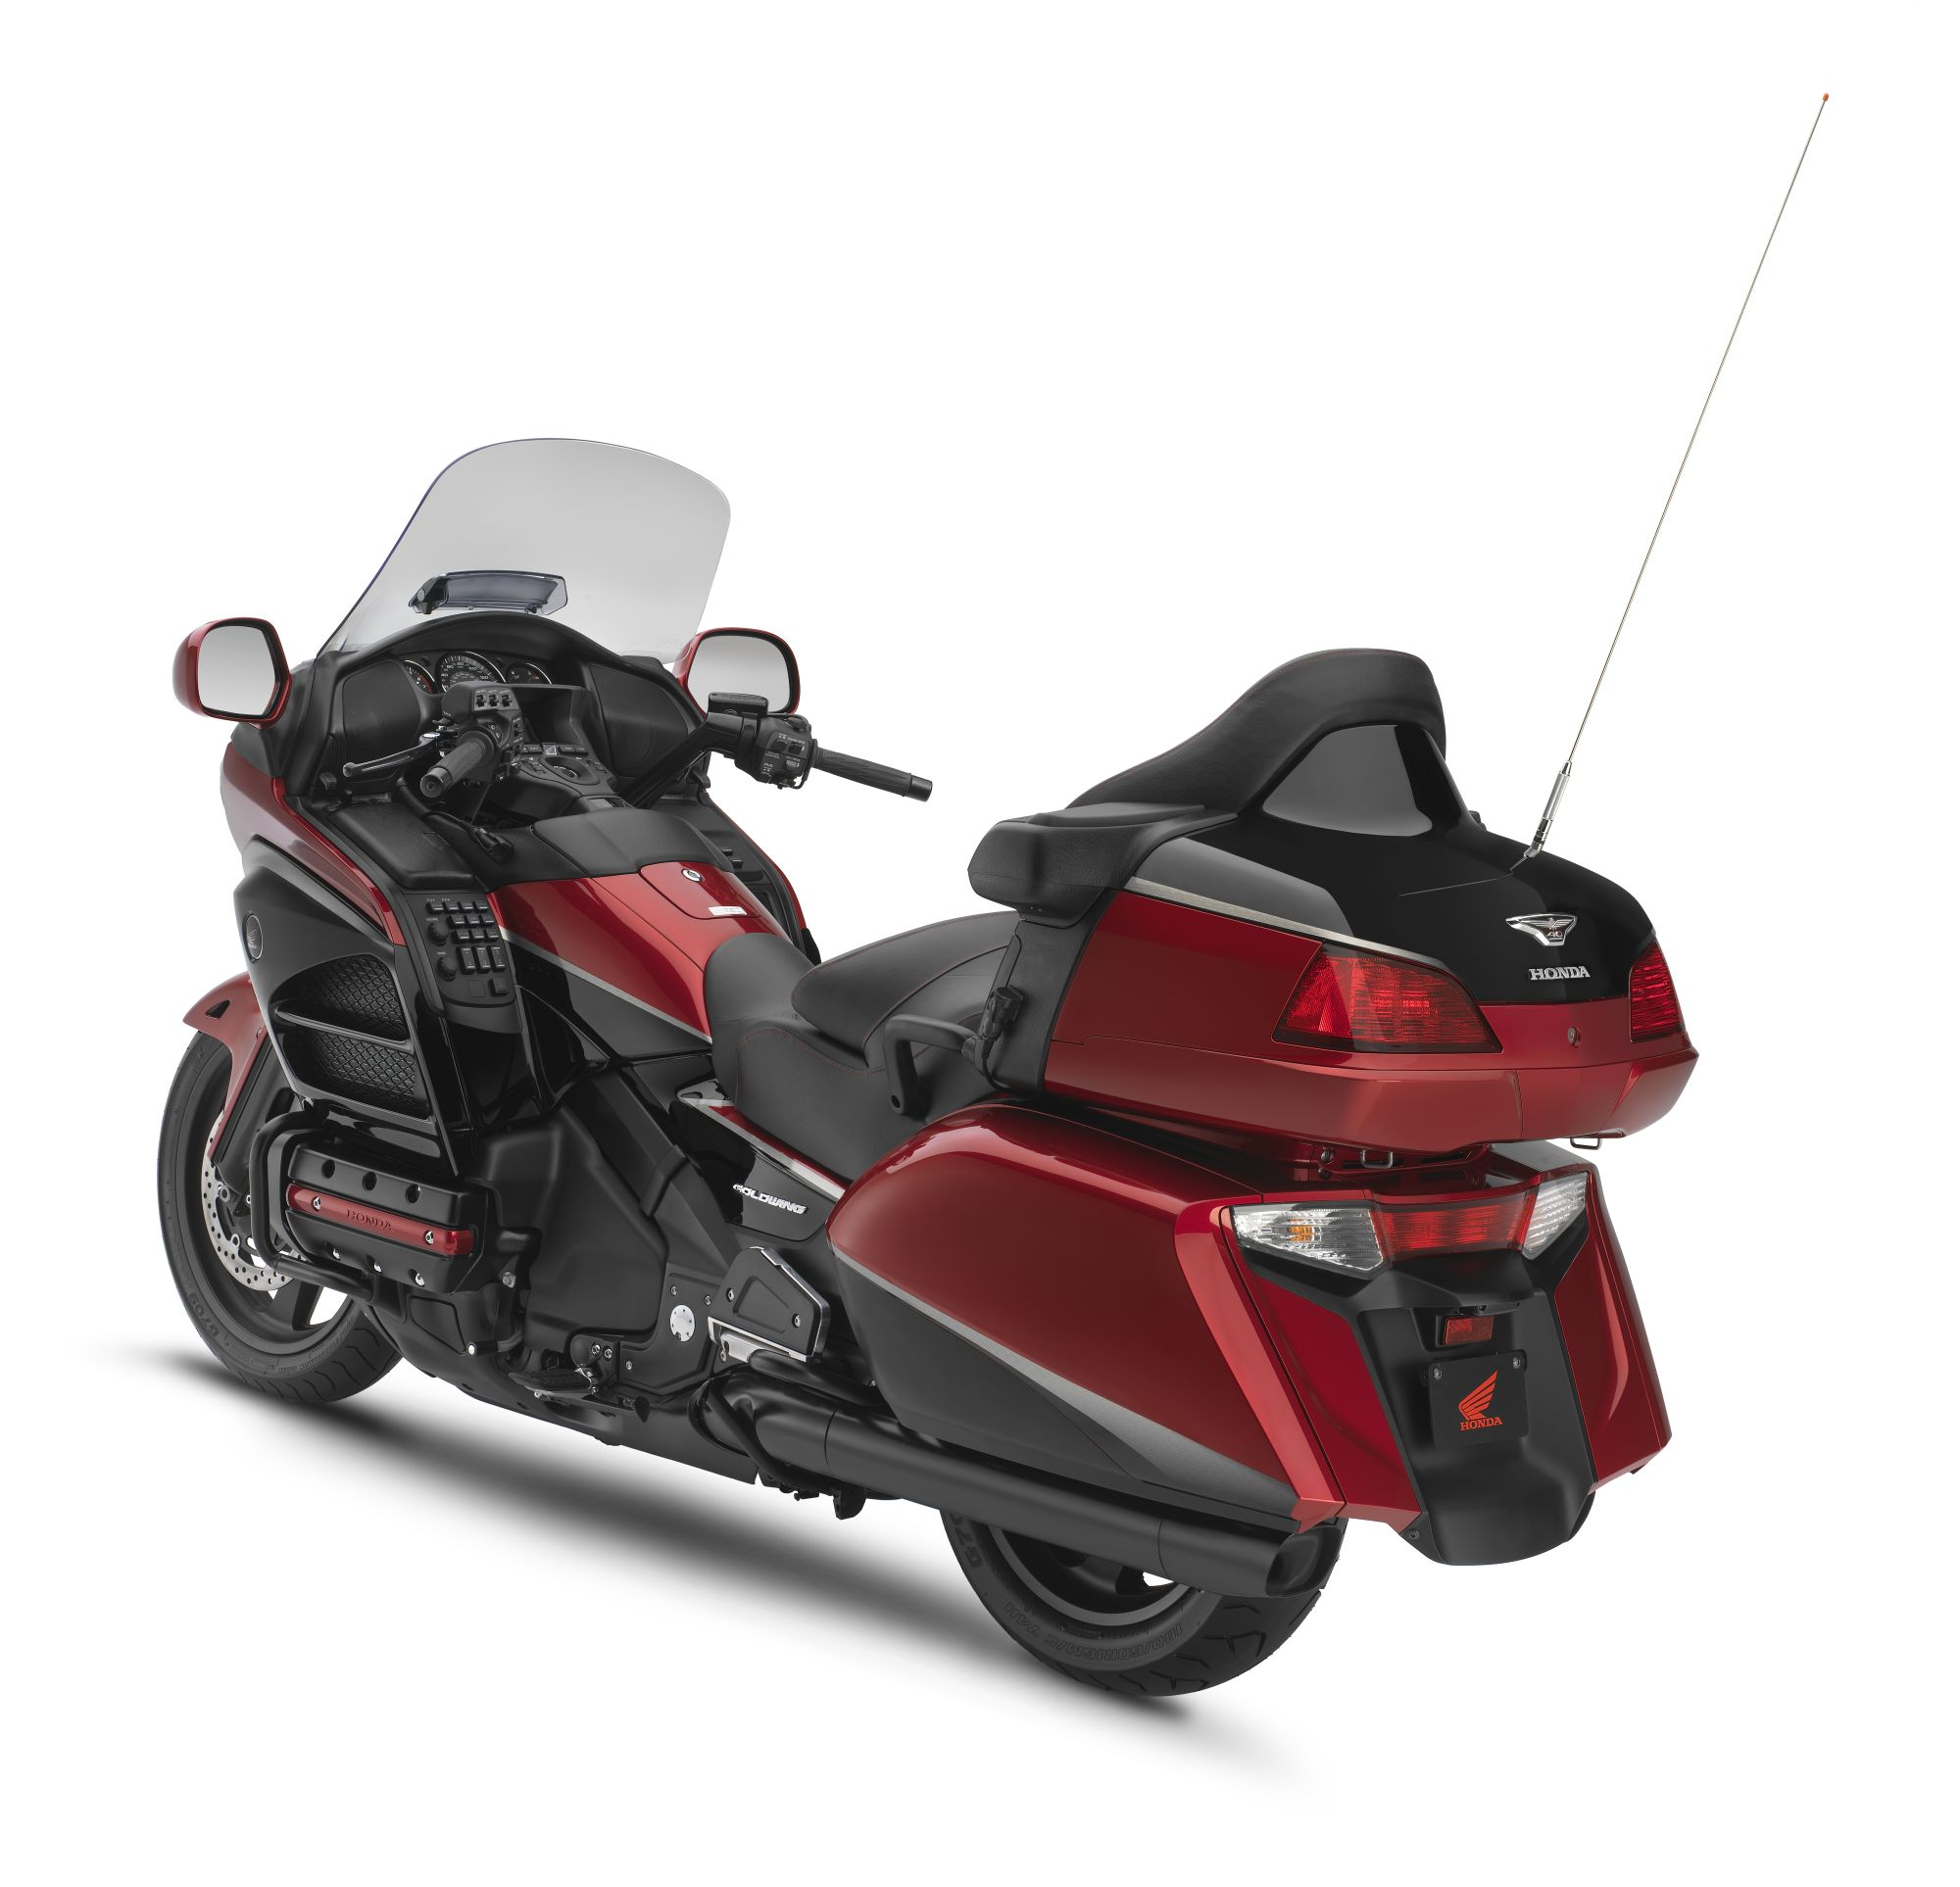 honda gl 1800 goldwing test t ff 39 s bilder technische. Black Bedroom Furniture Sets. Home Design Ideas